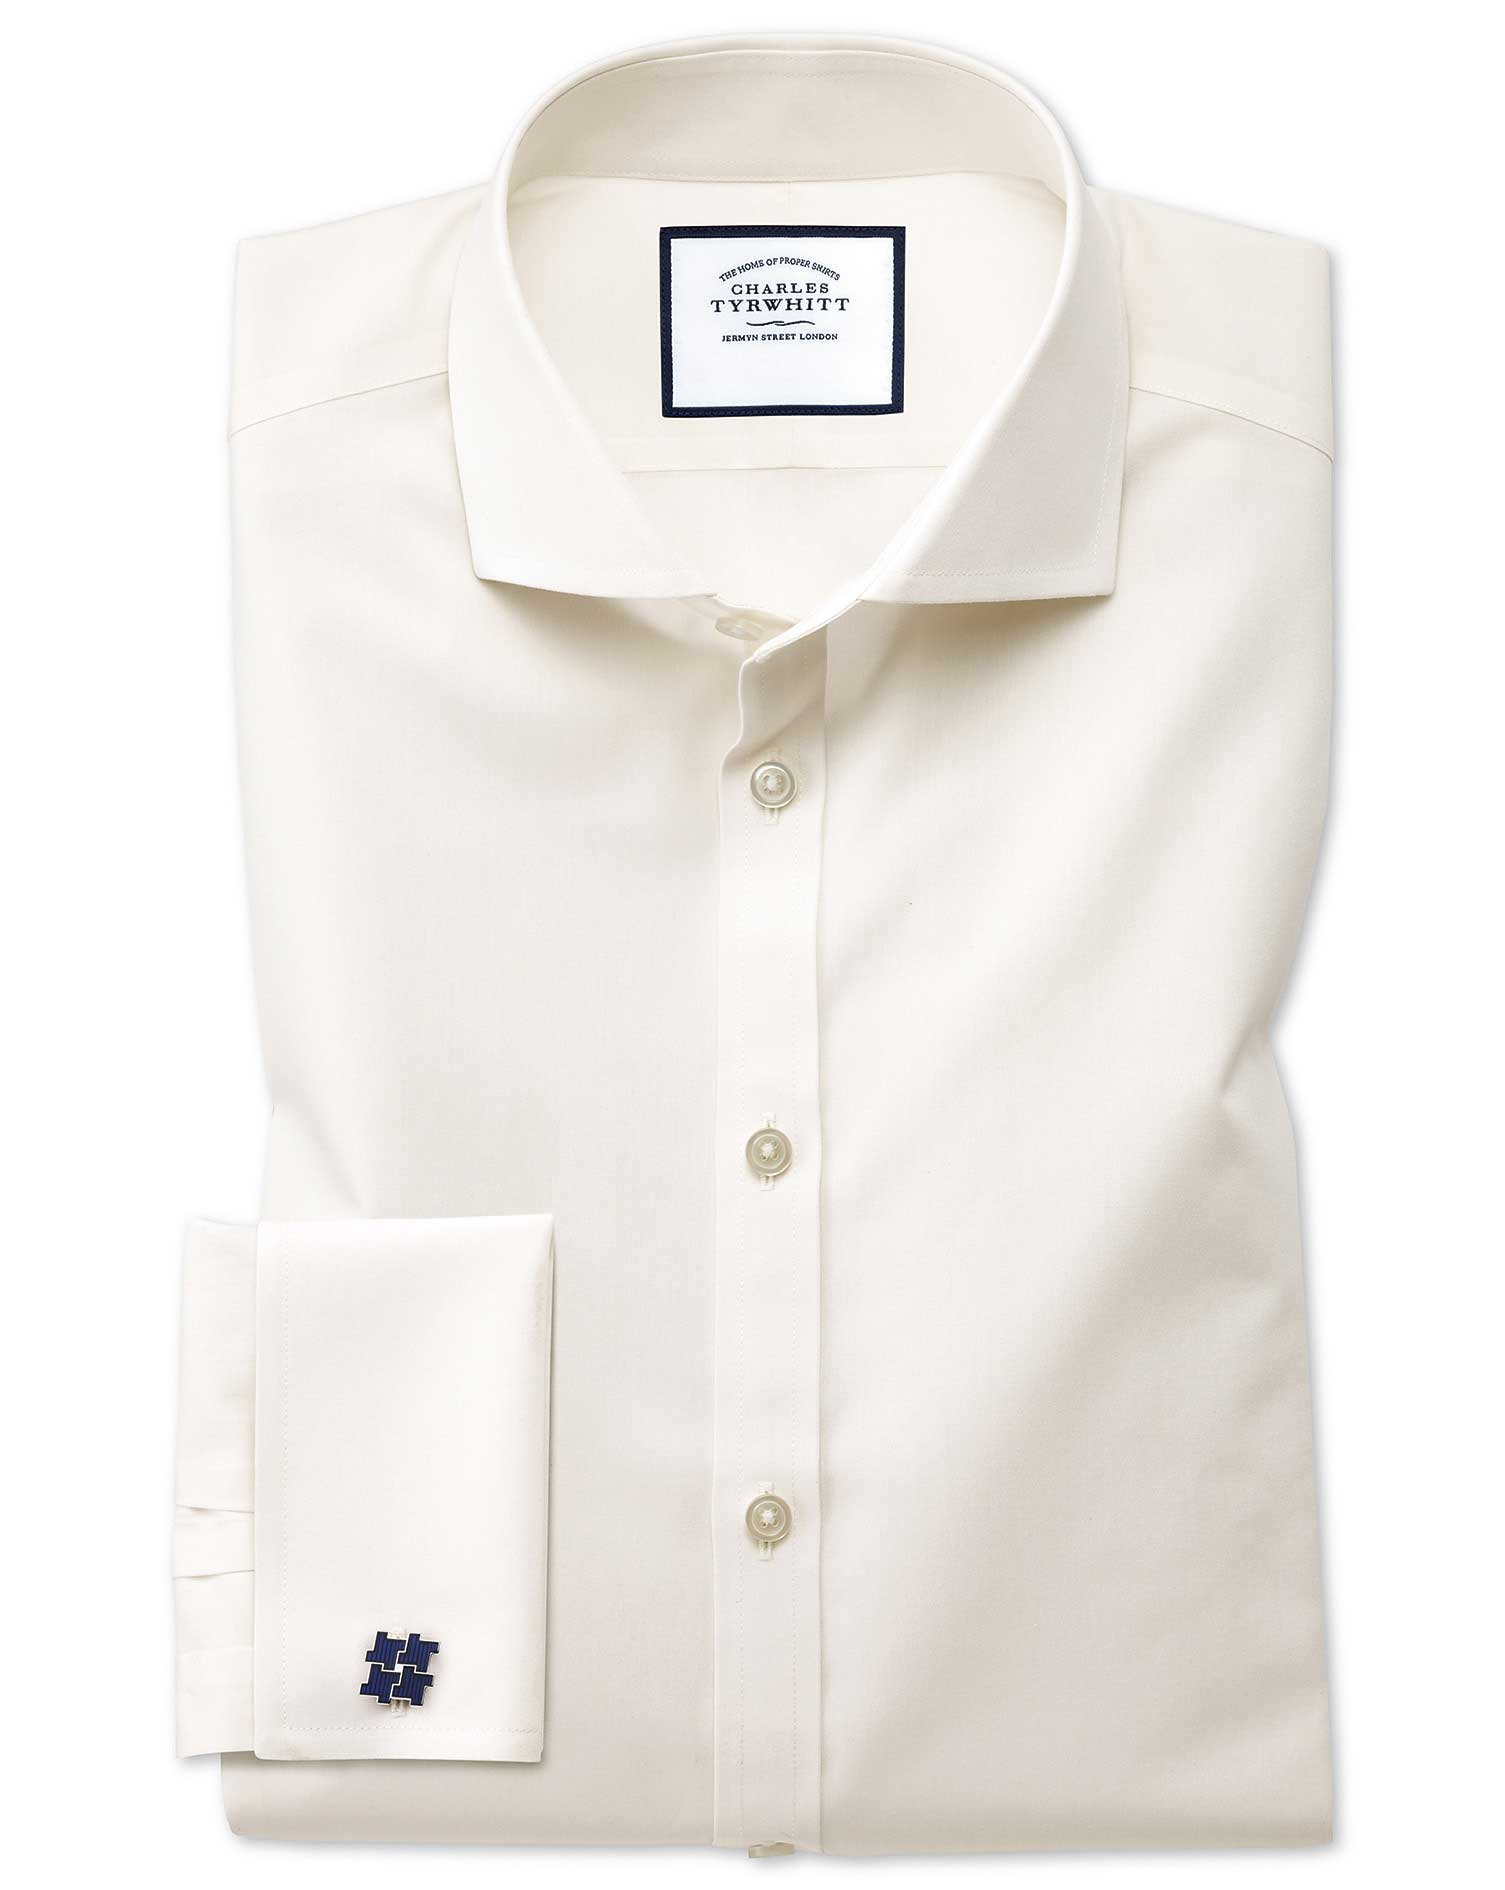 Extra Slim Fit Cutaway Non-Iron Poplin Cream Cotton Formal Shirt Single Cuff Size 15/33 by Charles T